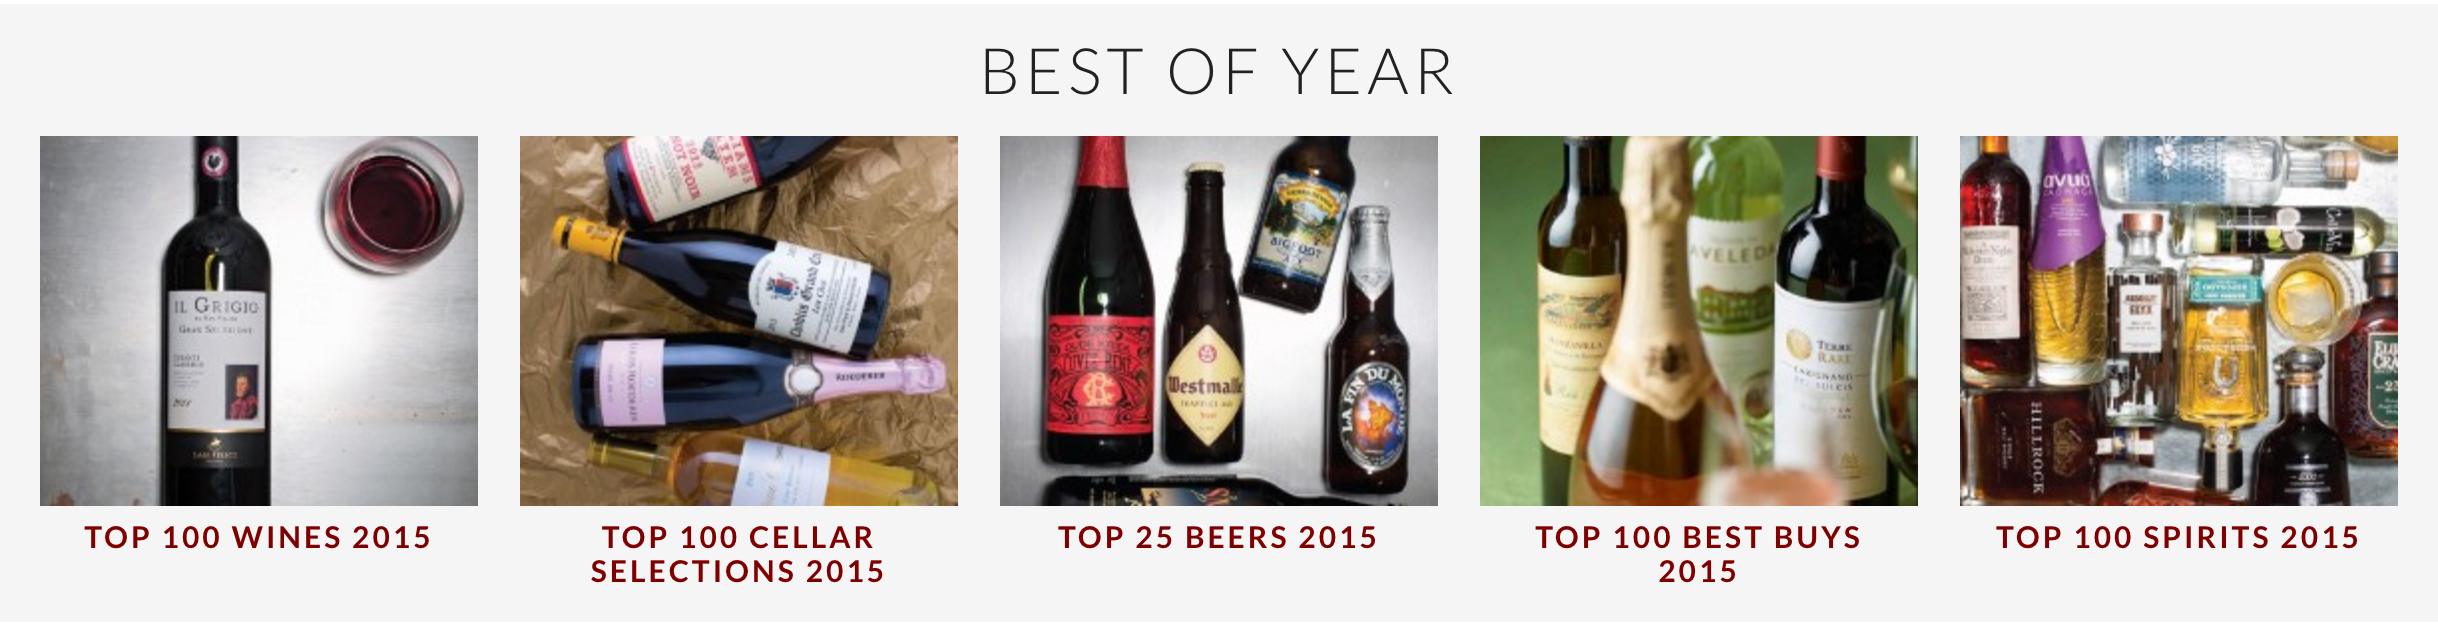 Wine Enthusiast Best of Year